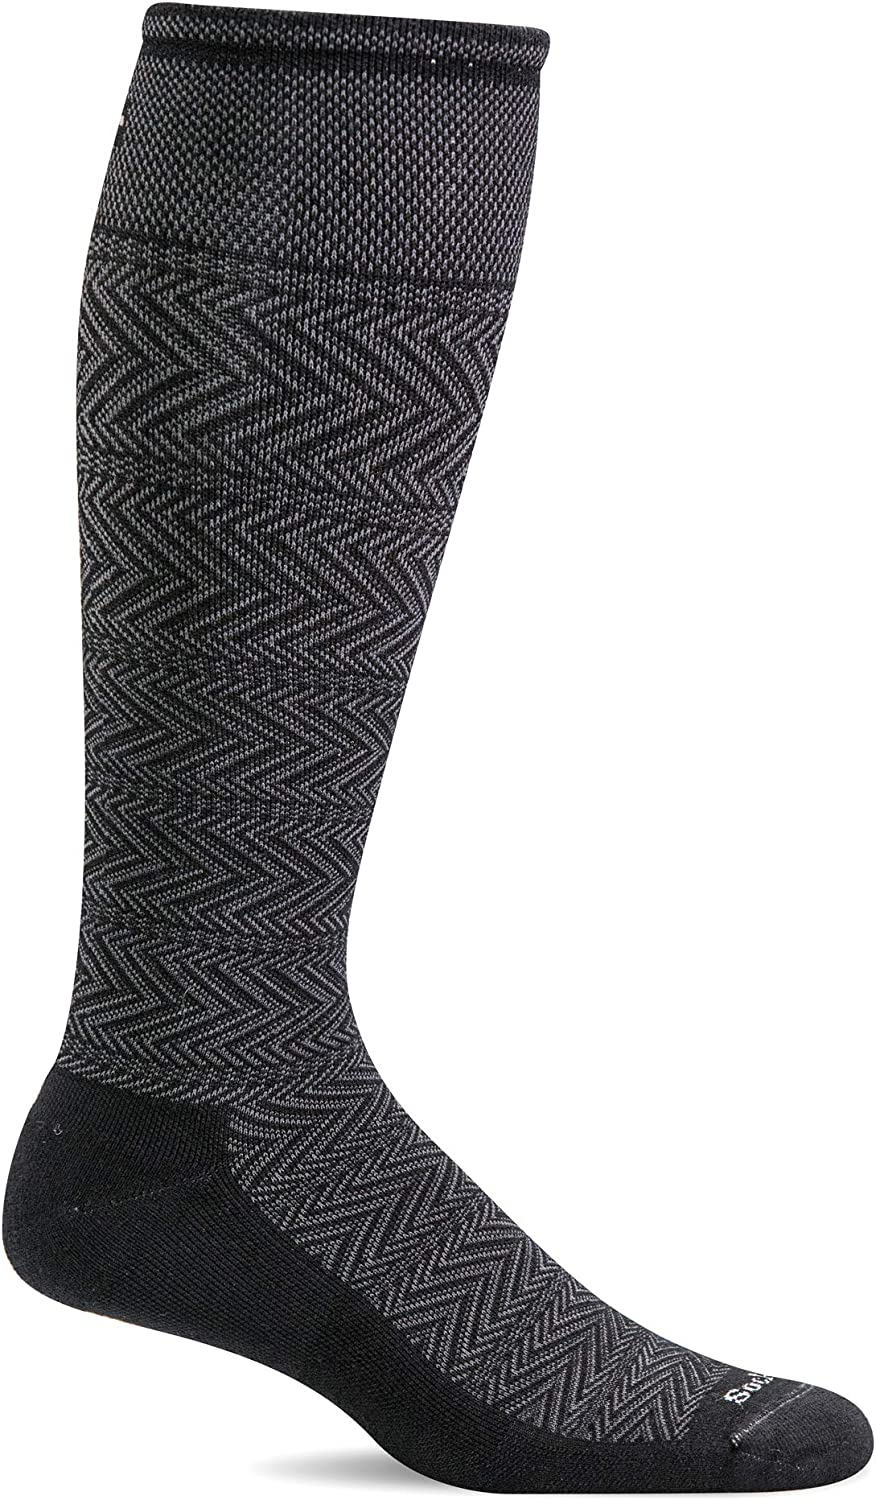 Sockwell Mens Chevron Twill Firm Graduated Compression Sock